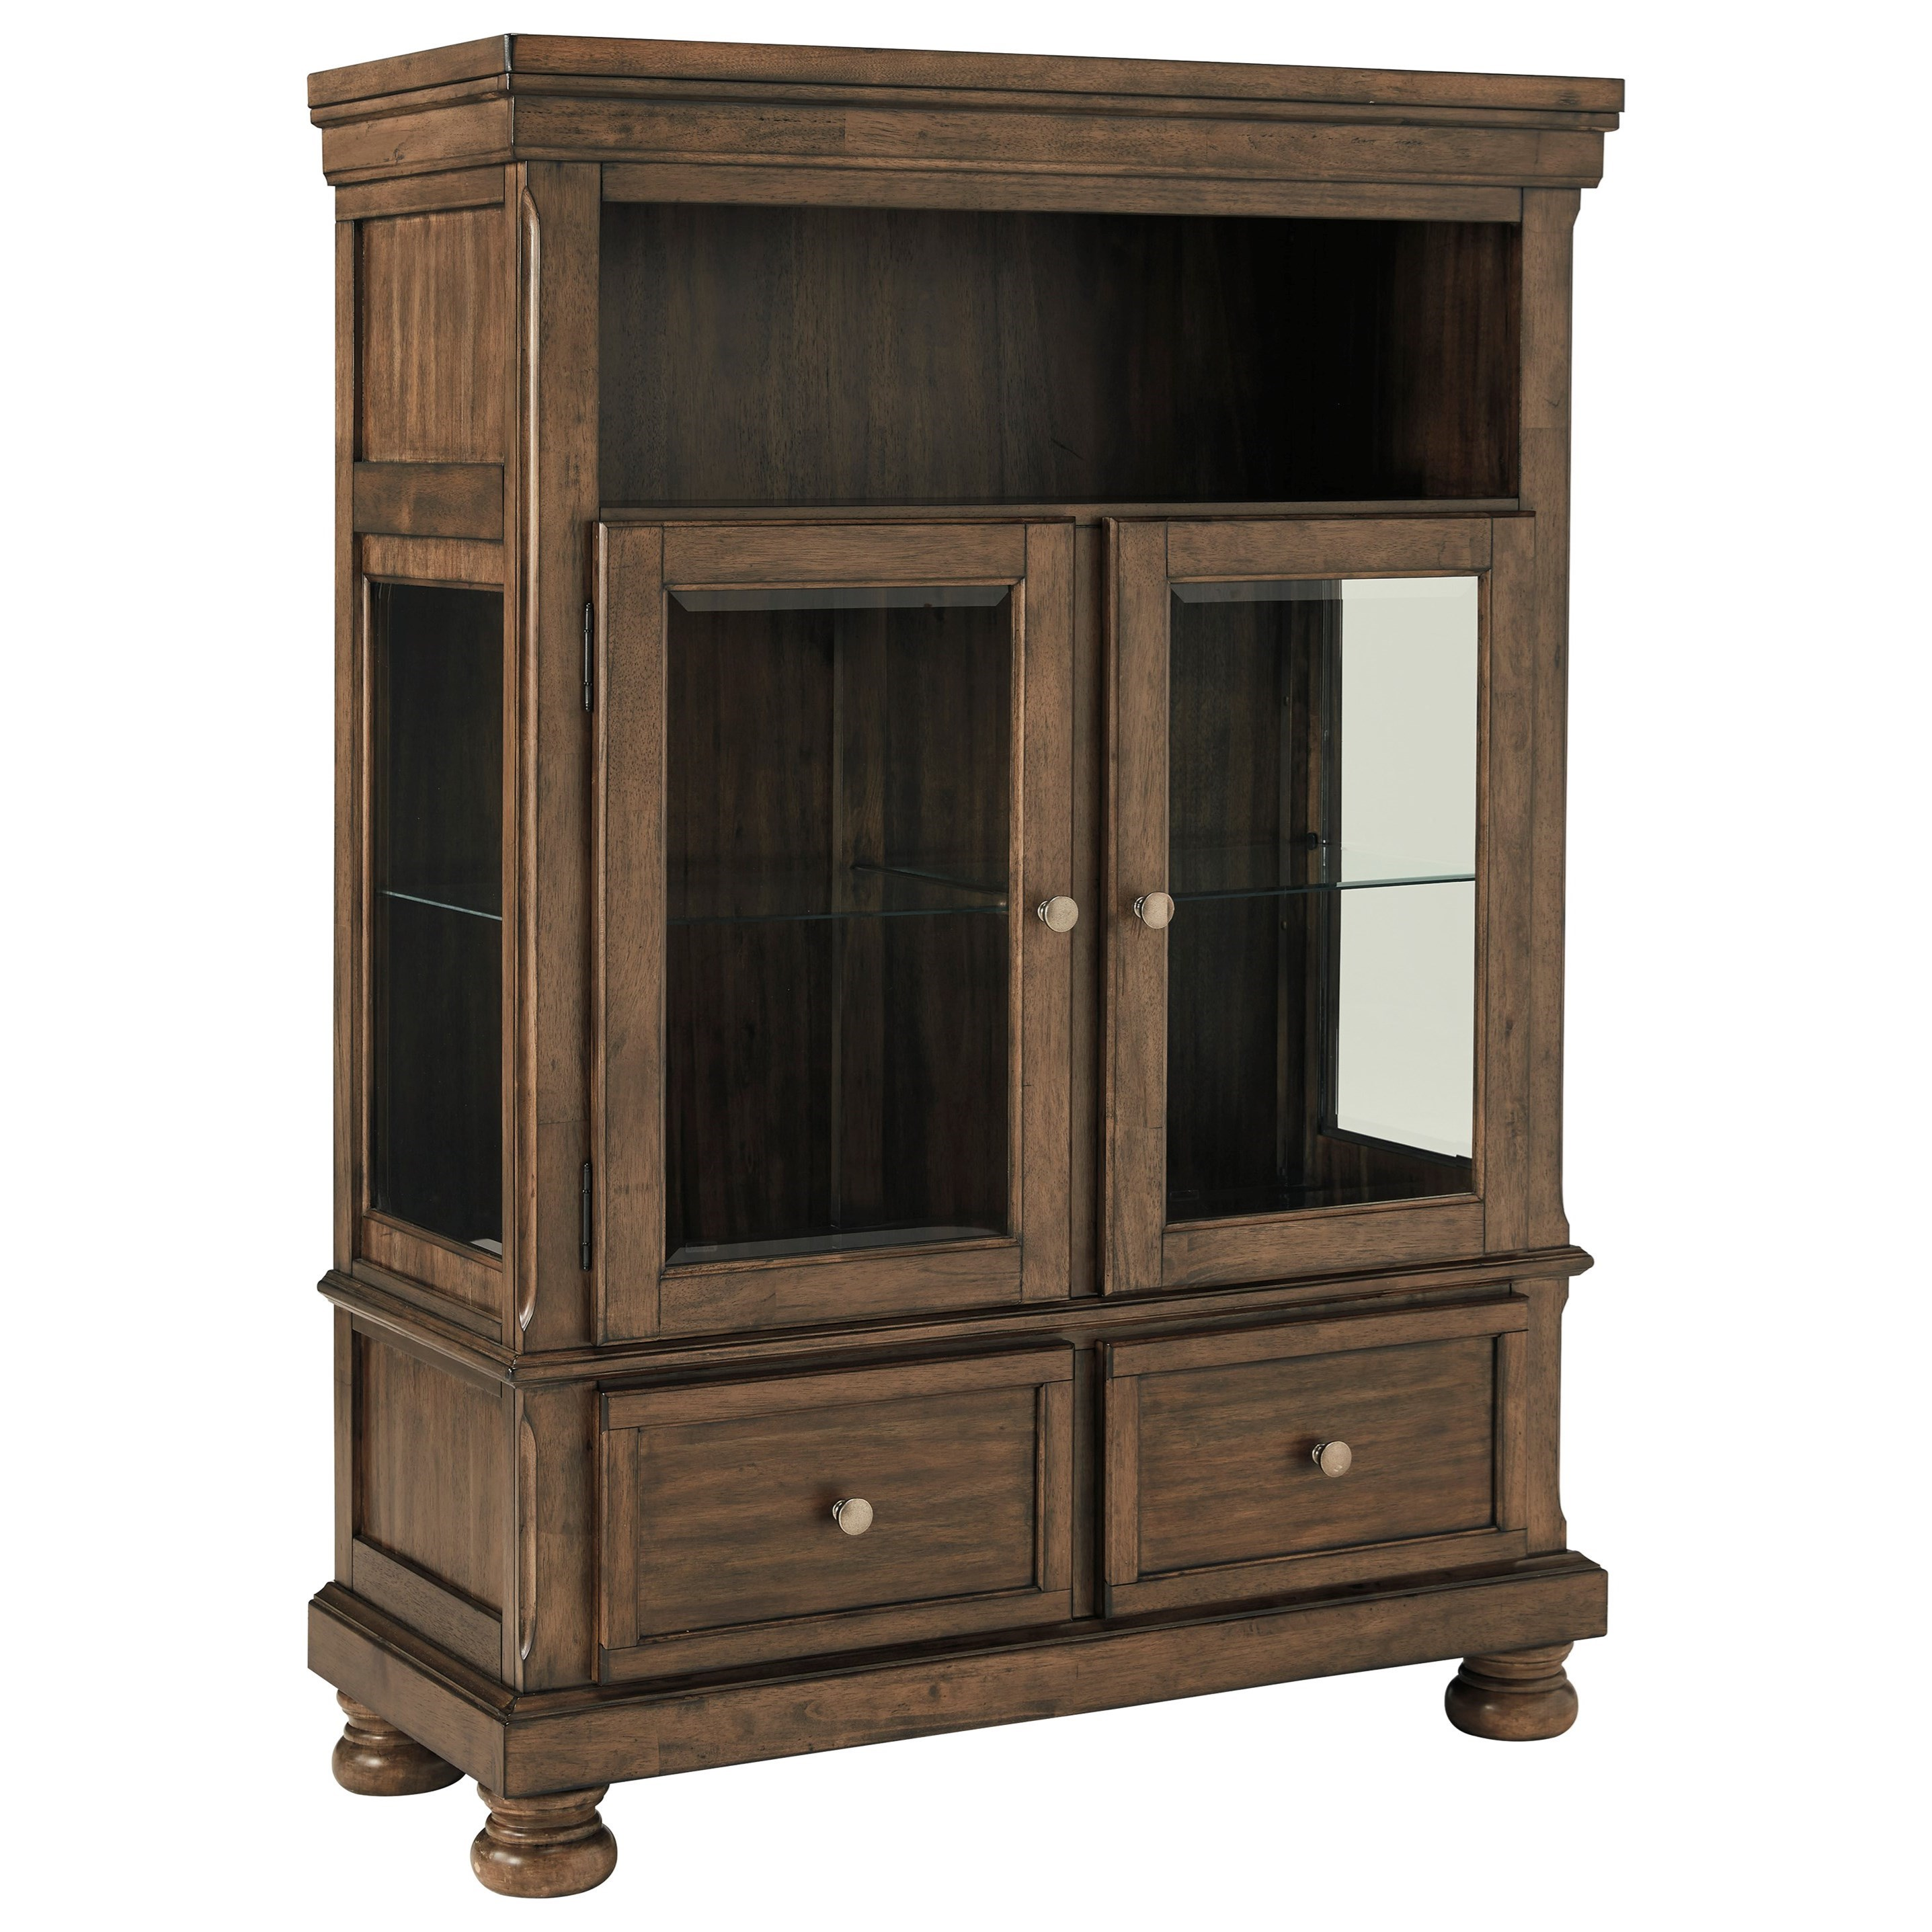 Dining Curio with Glass Shelving